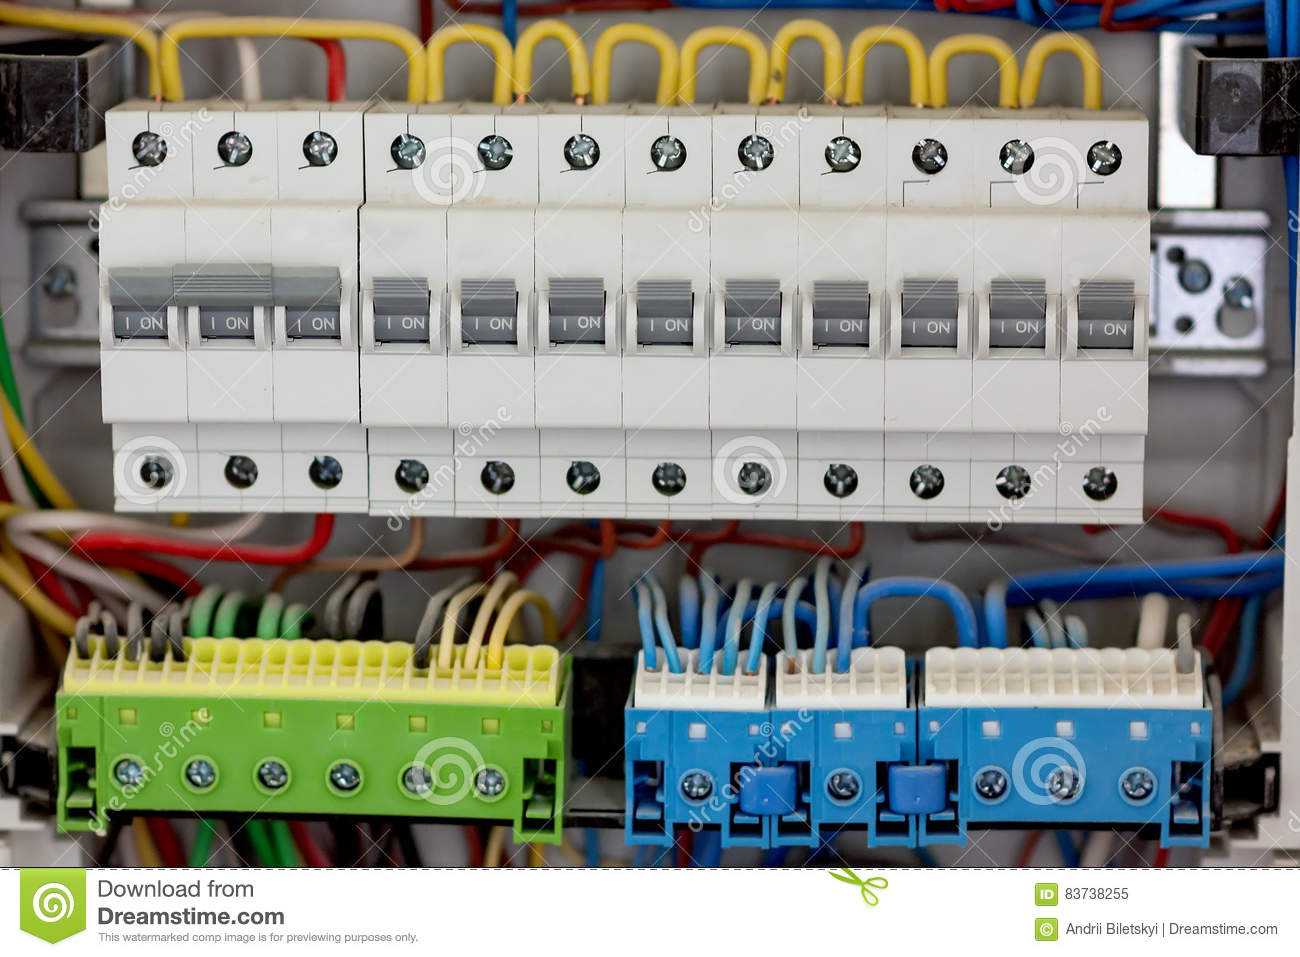 Electical Distribution Fuseboard Electrical Supplies Home Wiring Box Panel At A Assembly Line Factory Controls